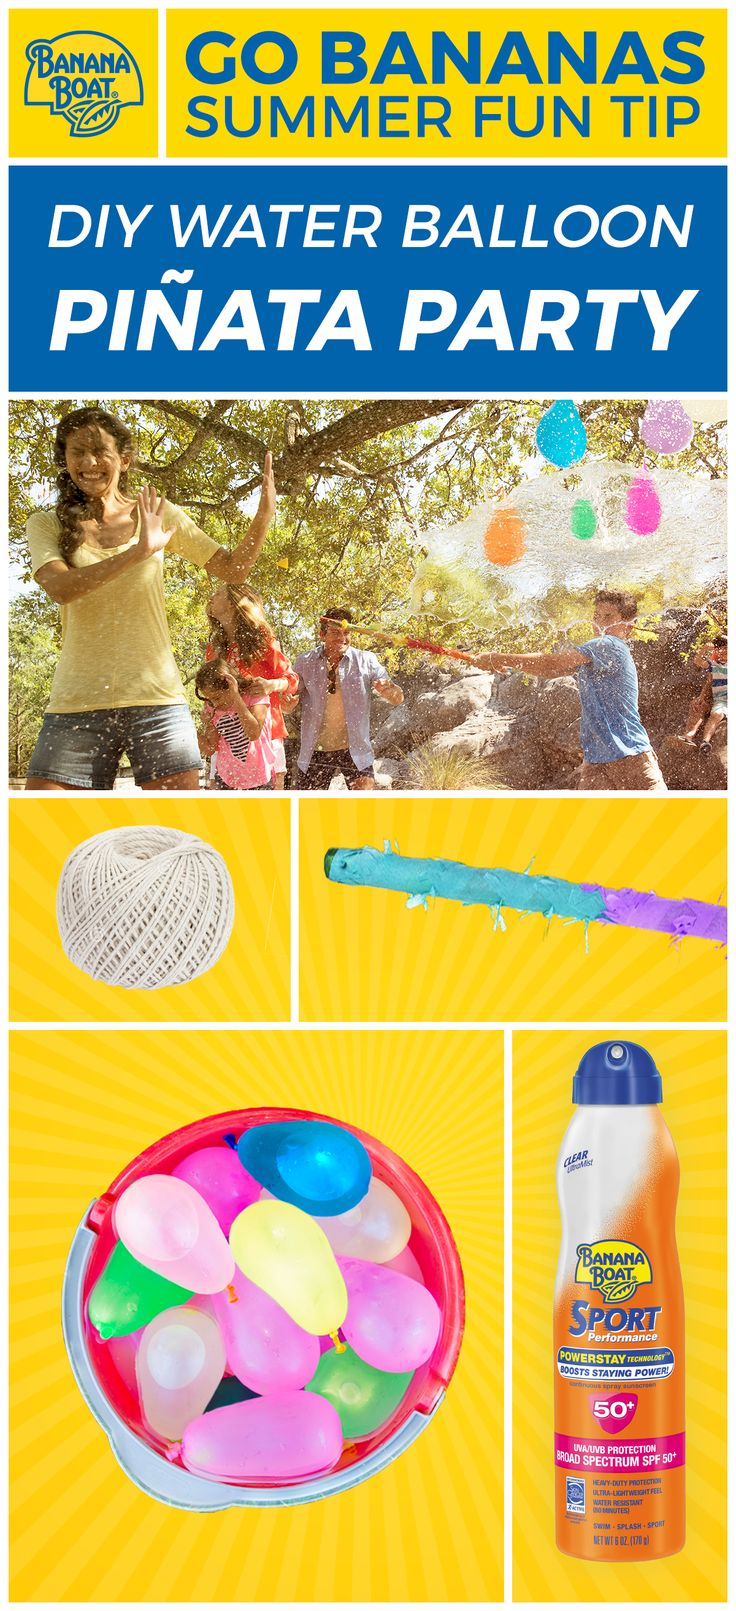 Water balloon piñatas are a backyard water game that'll have everyone laughing! 1. Fill colorful water balloons. 2. String them and hang at eye level. 3. Take turns swinging. 4. SPLASH! Don't forget about sun safety! Cover up with Banana Boat® sunscreen. For more summer fun tips, visit BananaBoat.com.